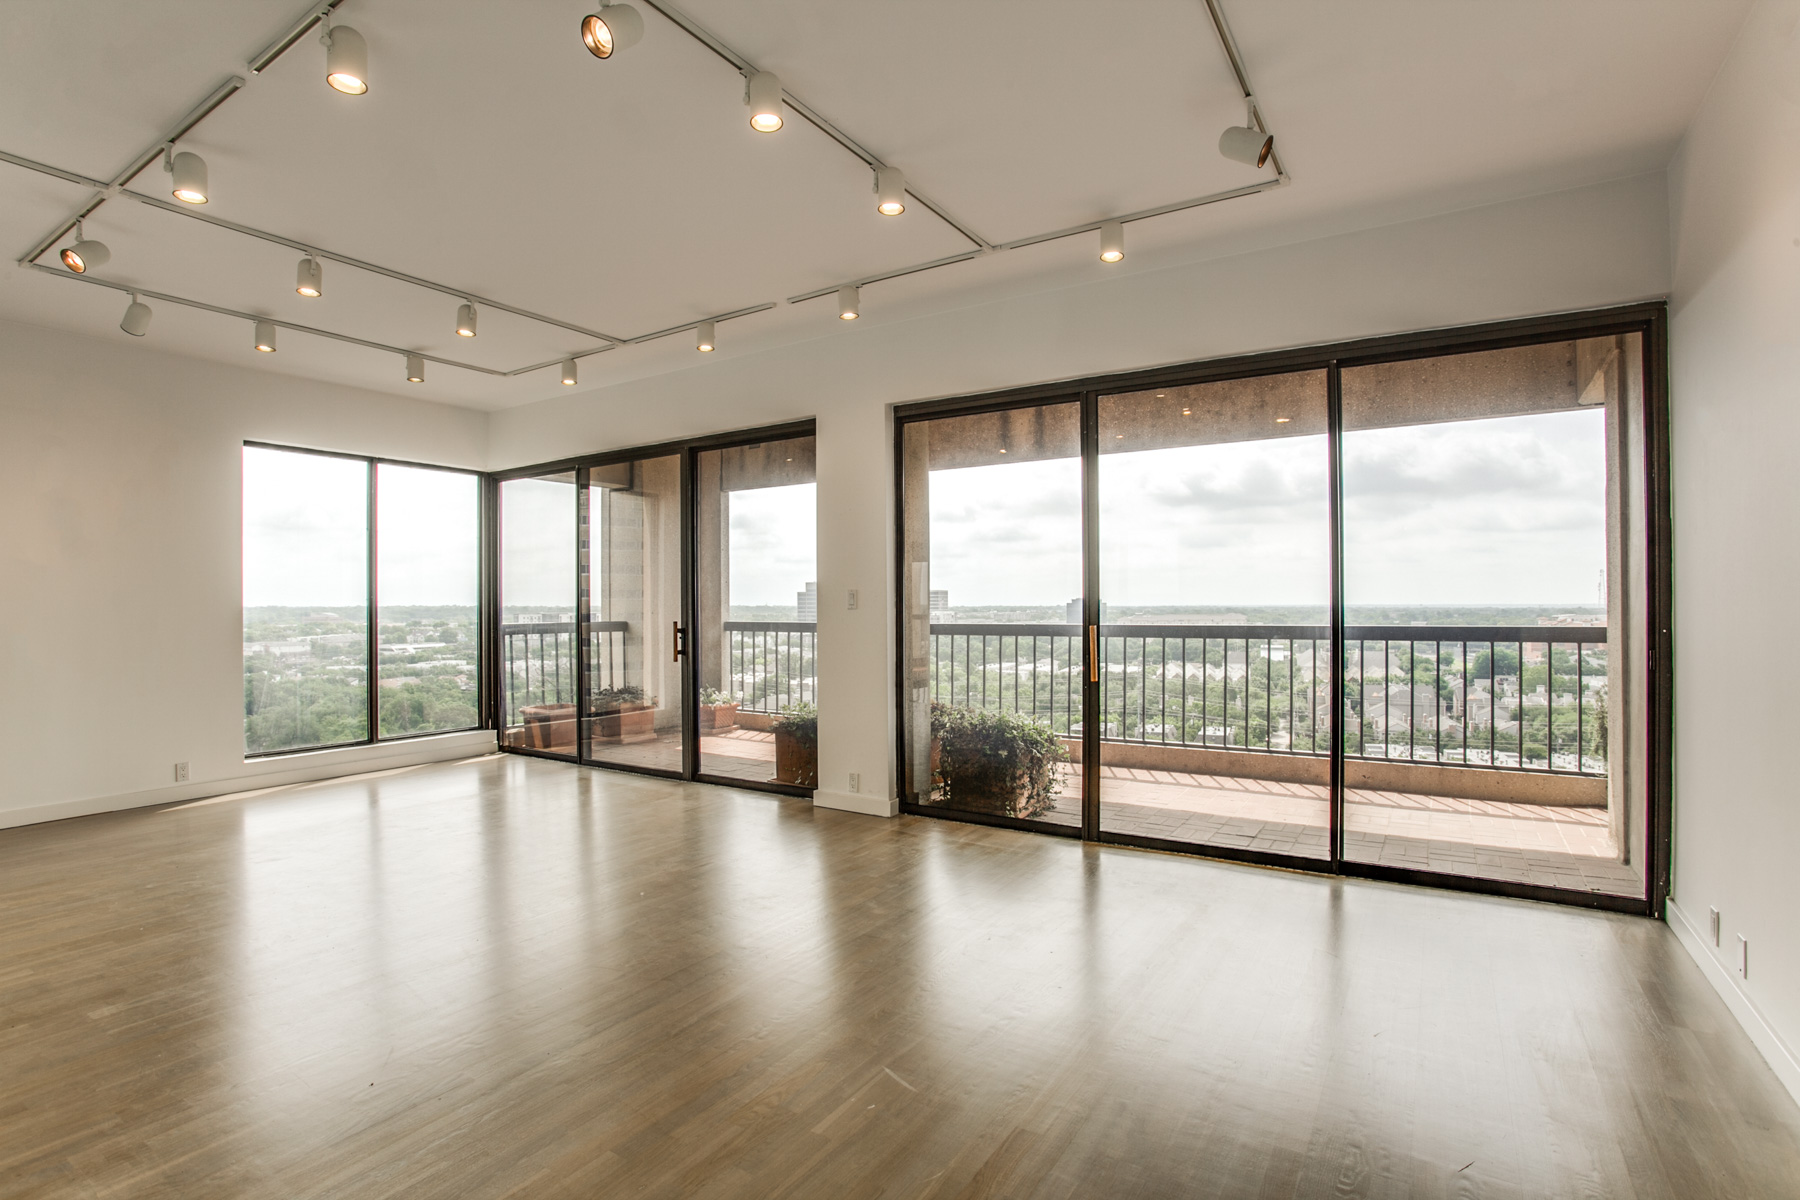 Copropriété pour l Vente à Fabulous Views of Dallas 3831 Turtle Creek Boulevard #18E Dallas, Texas, 75205 États-Unis